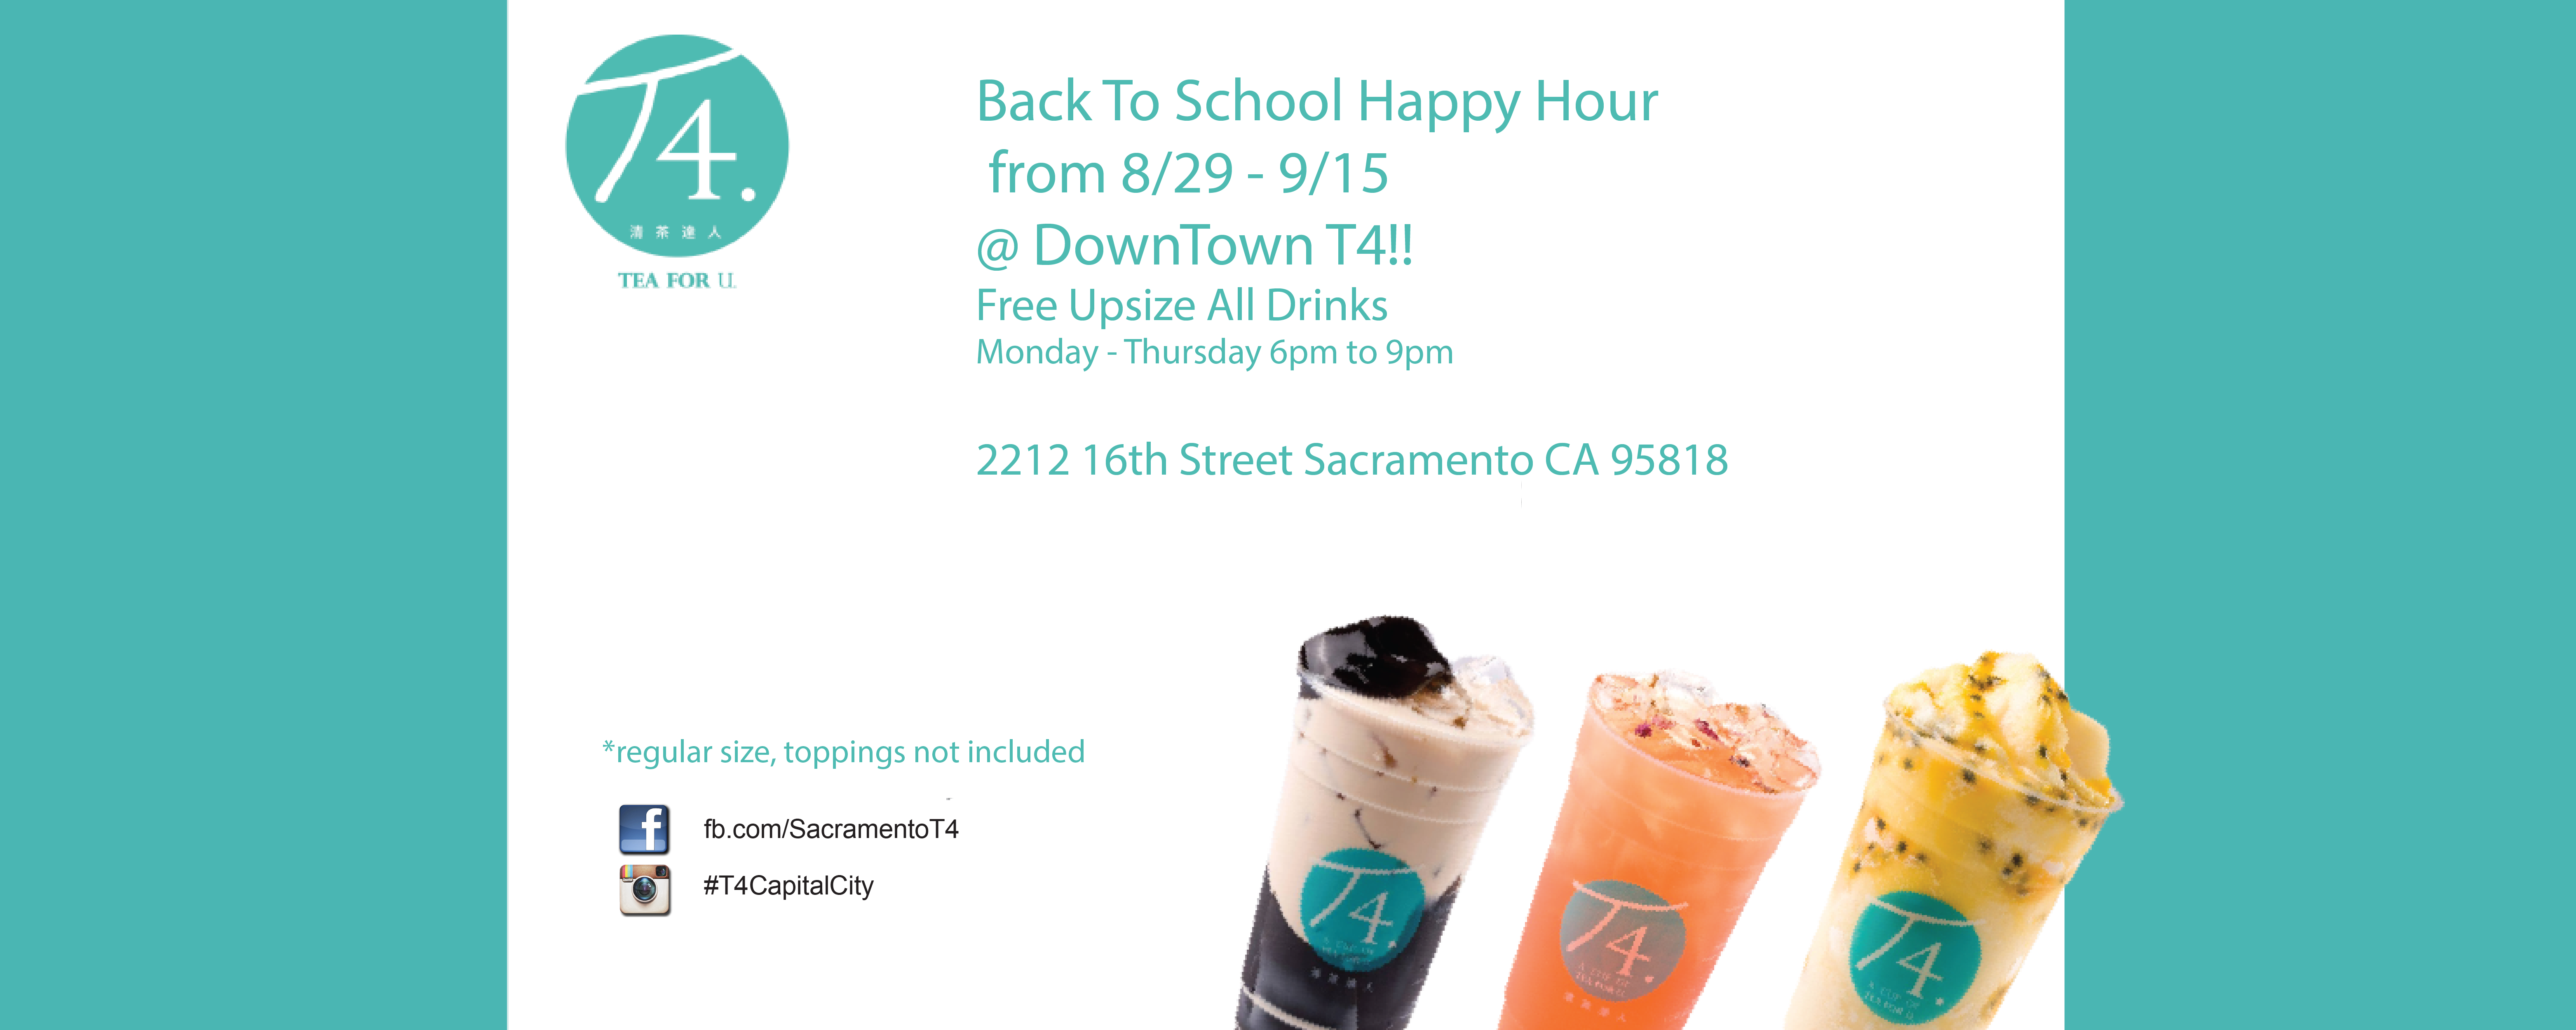 Happy hour is back! 8/29 to 9/15.  All drinks are auto upsize from 6-9pm, Monday thru Thursday.  Downtown Location only*